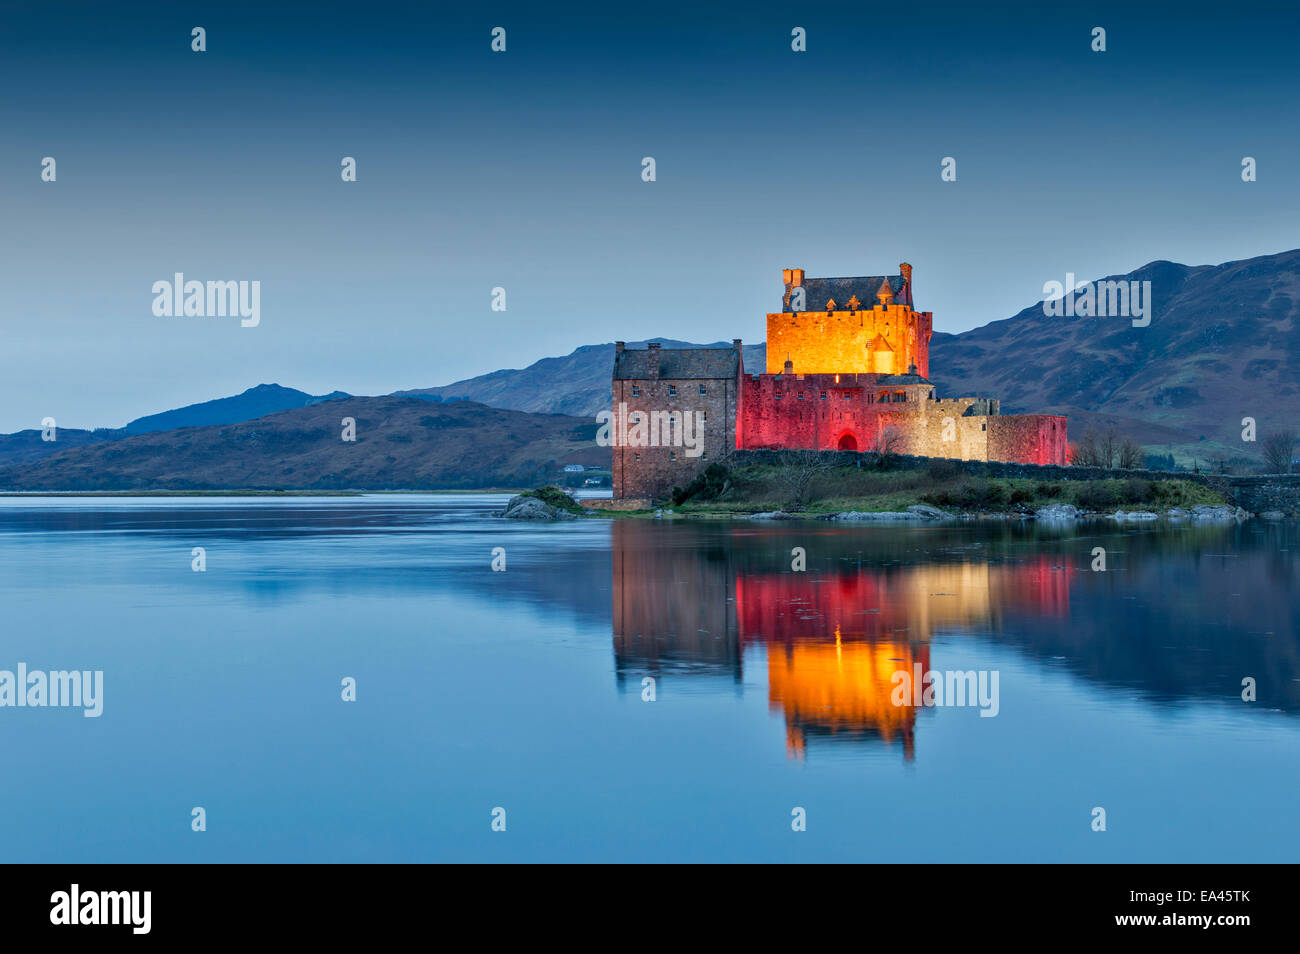 EILEAN DONAN CASTLE WITH EVENING LIGHTS FOR ARMISTICE DAY NOVEMBER 11 2014 - Stock Image